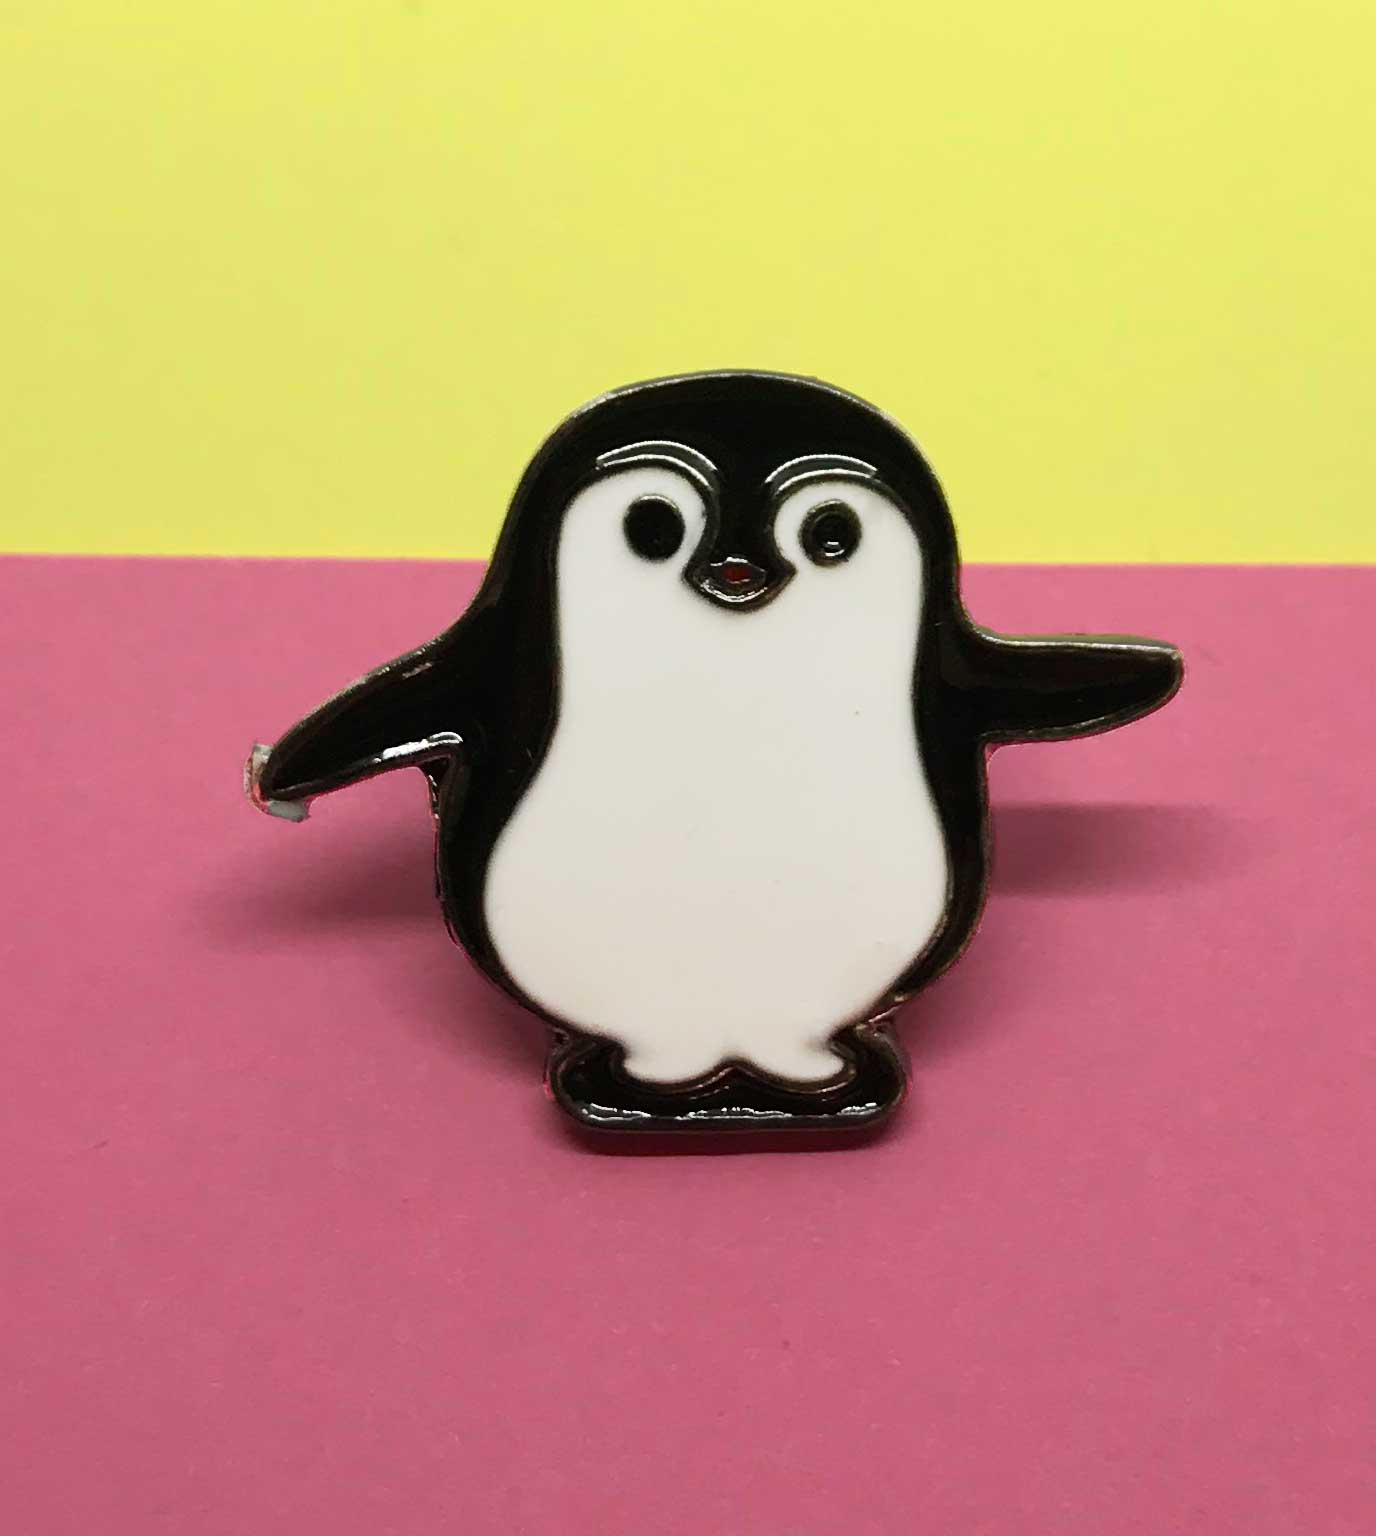 Pin de Pinguino Saluda